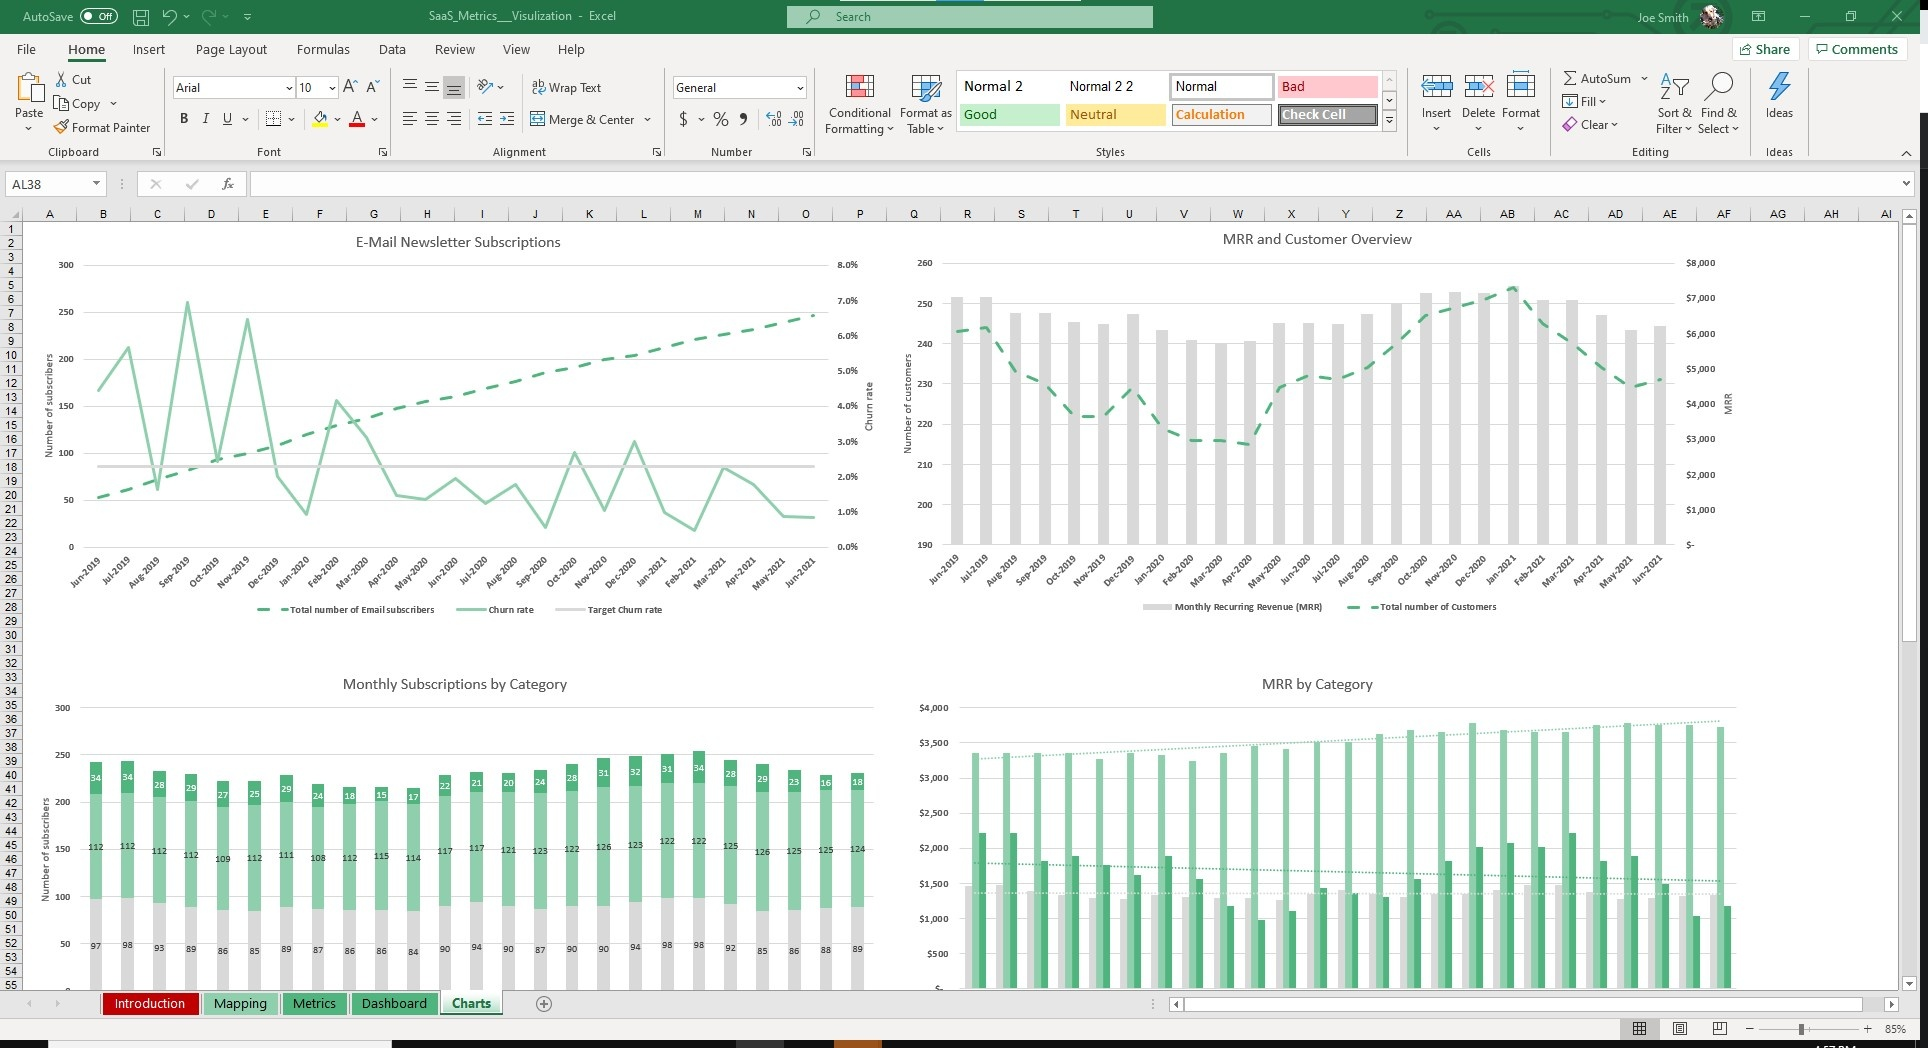 View your metrics charted on graphs to see overall trends and the health of the business.